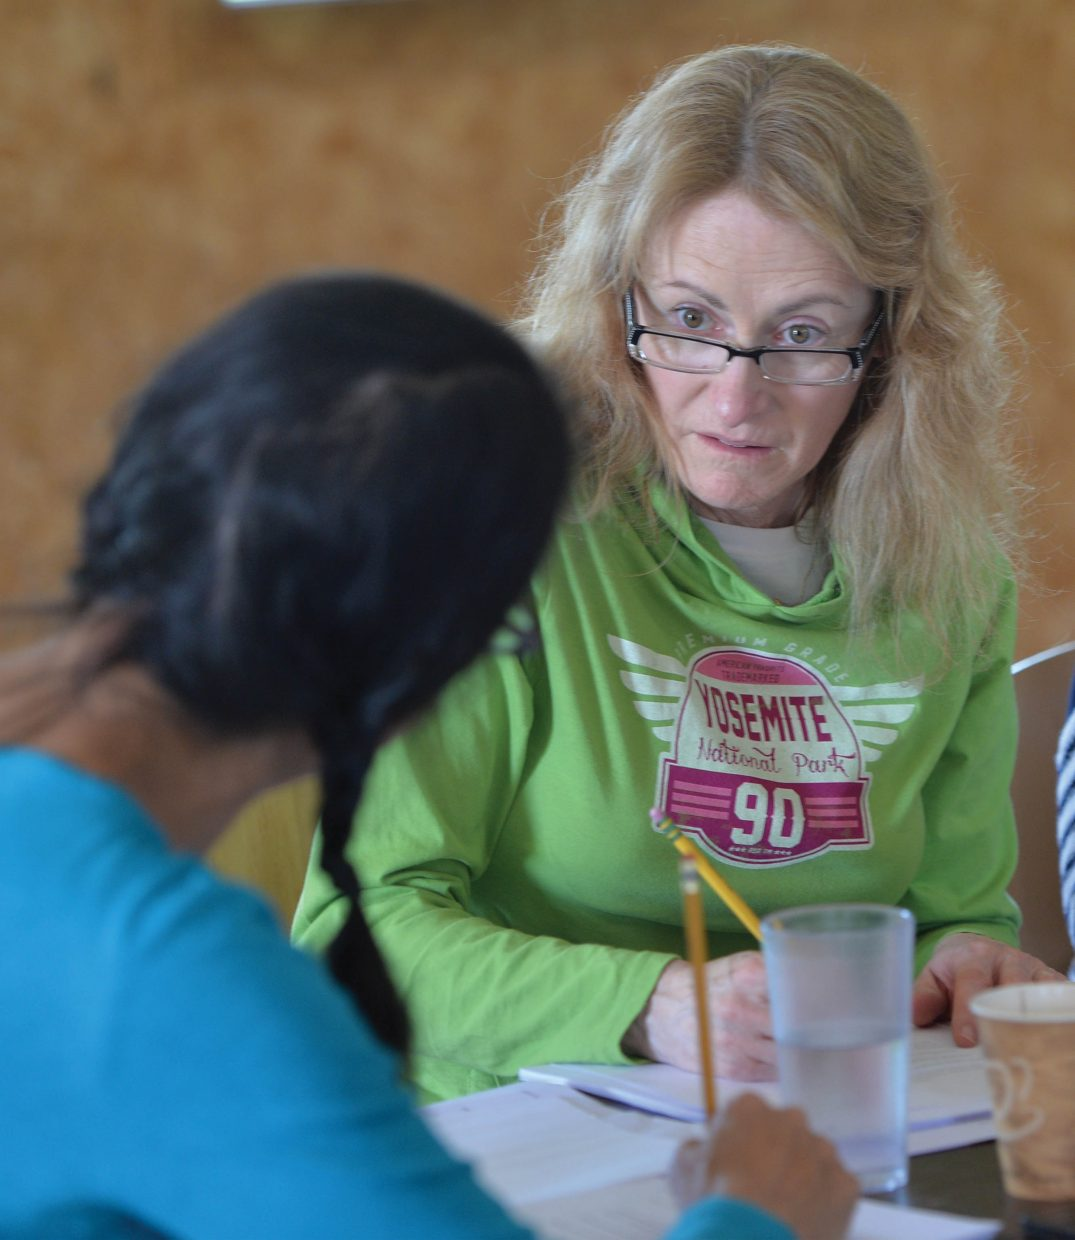 Actor Shannon Holt takes direction from playwright and fellow actor Sandra Tsing-Loh during a read through at the Perry Mansfield Performing Arts School land Camp this week. Holt and Tsing-Loh were in town for the New Works Festival.